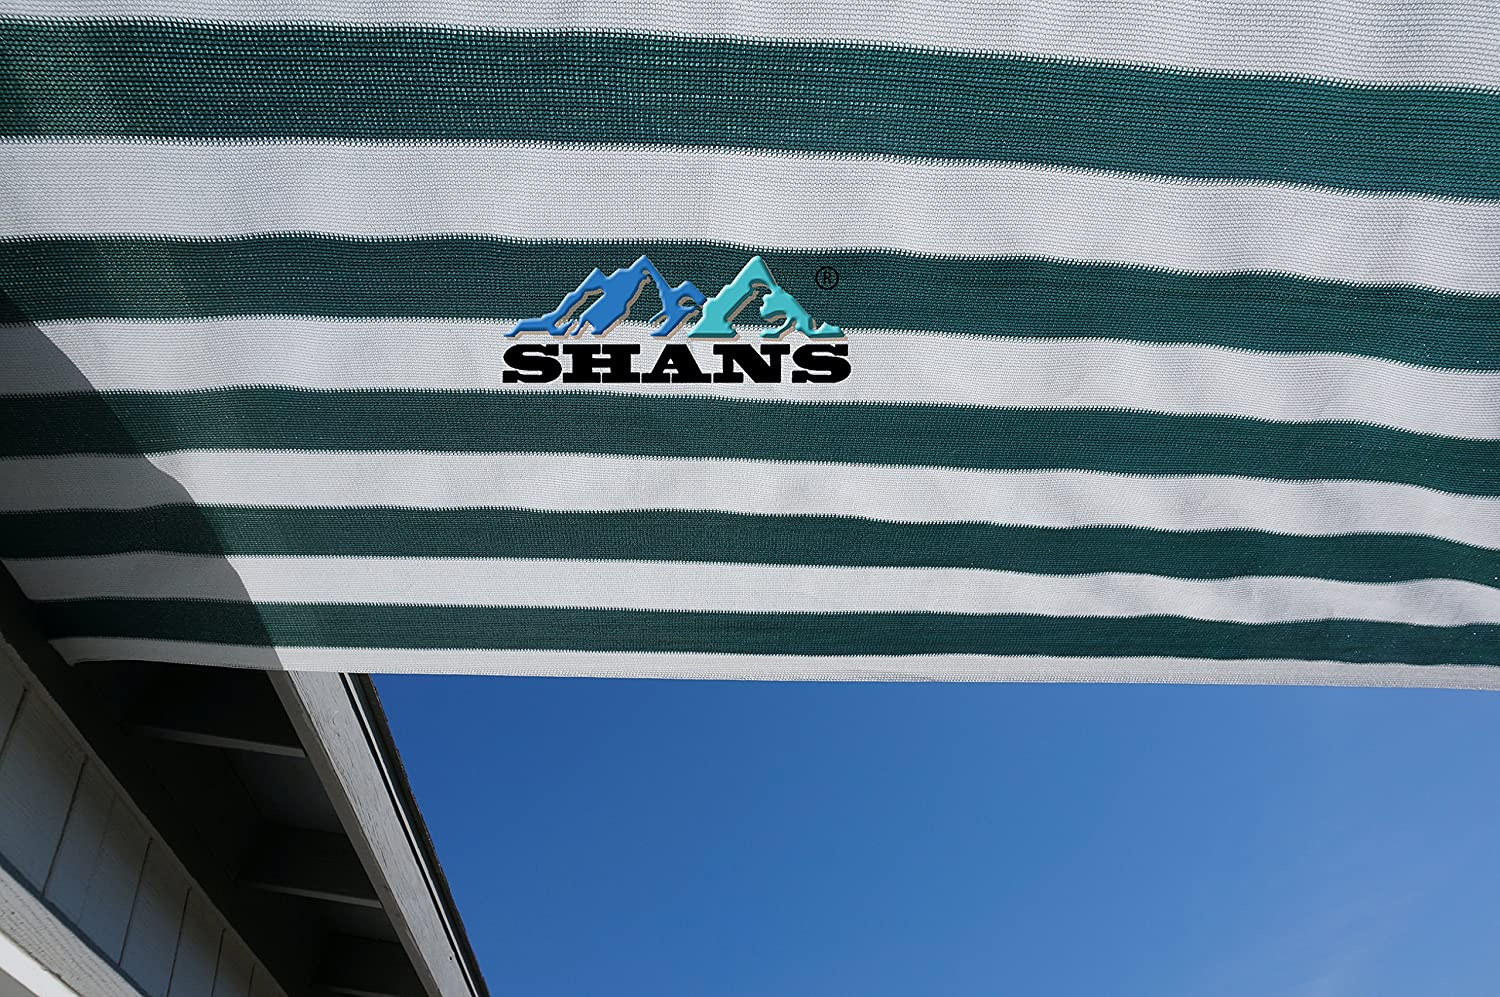 SHANS 90 UV Shade Sail DIY with Clips Free Green and White 12ft x 30ft